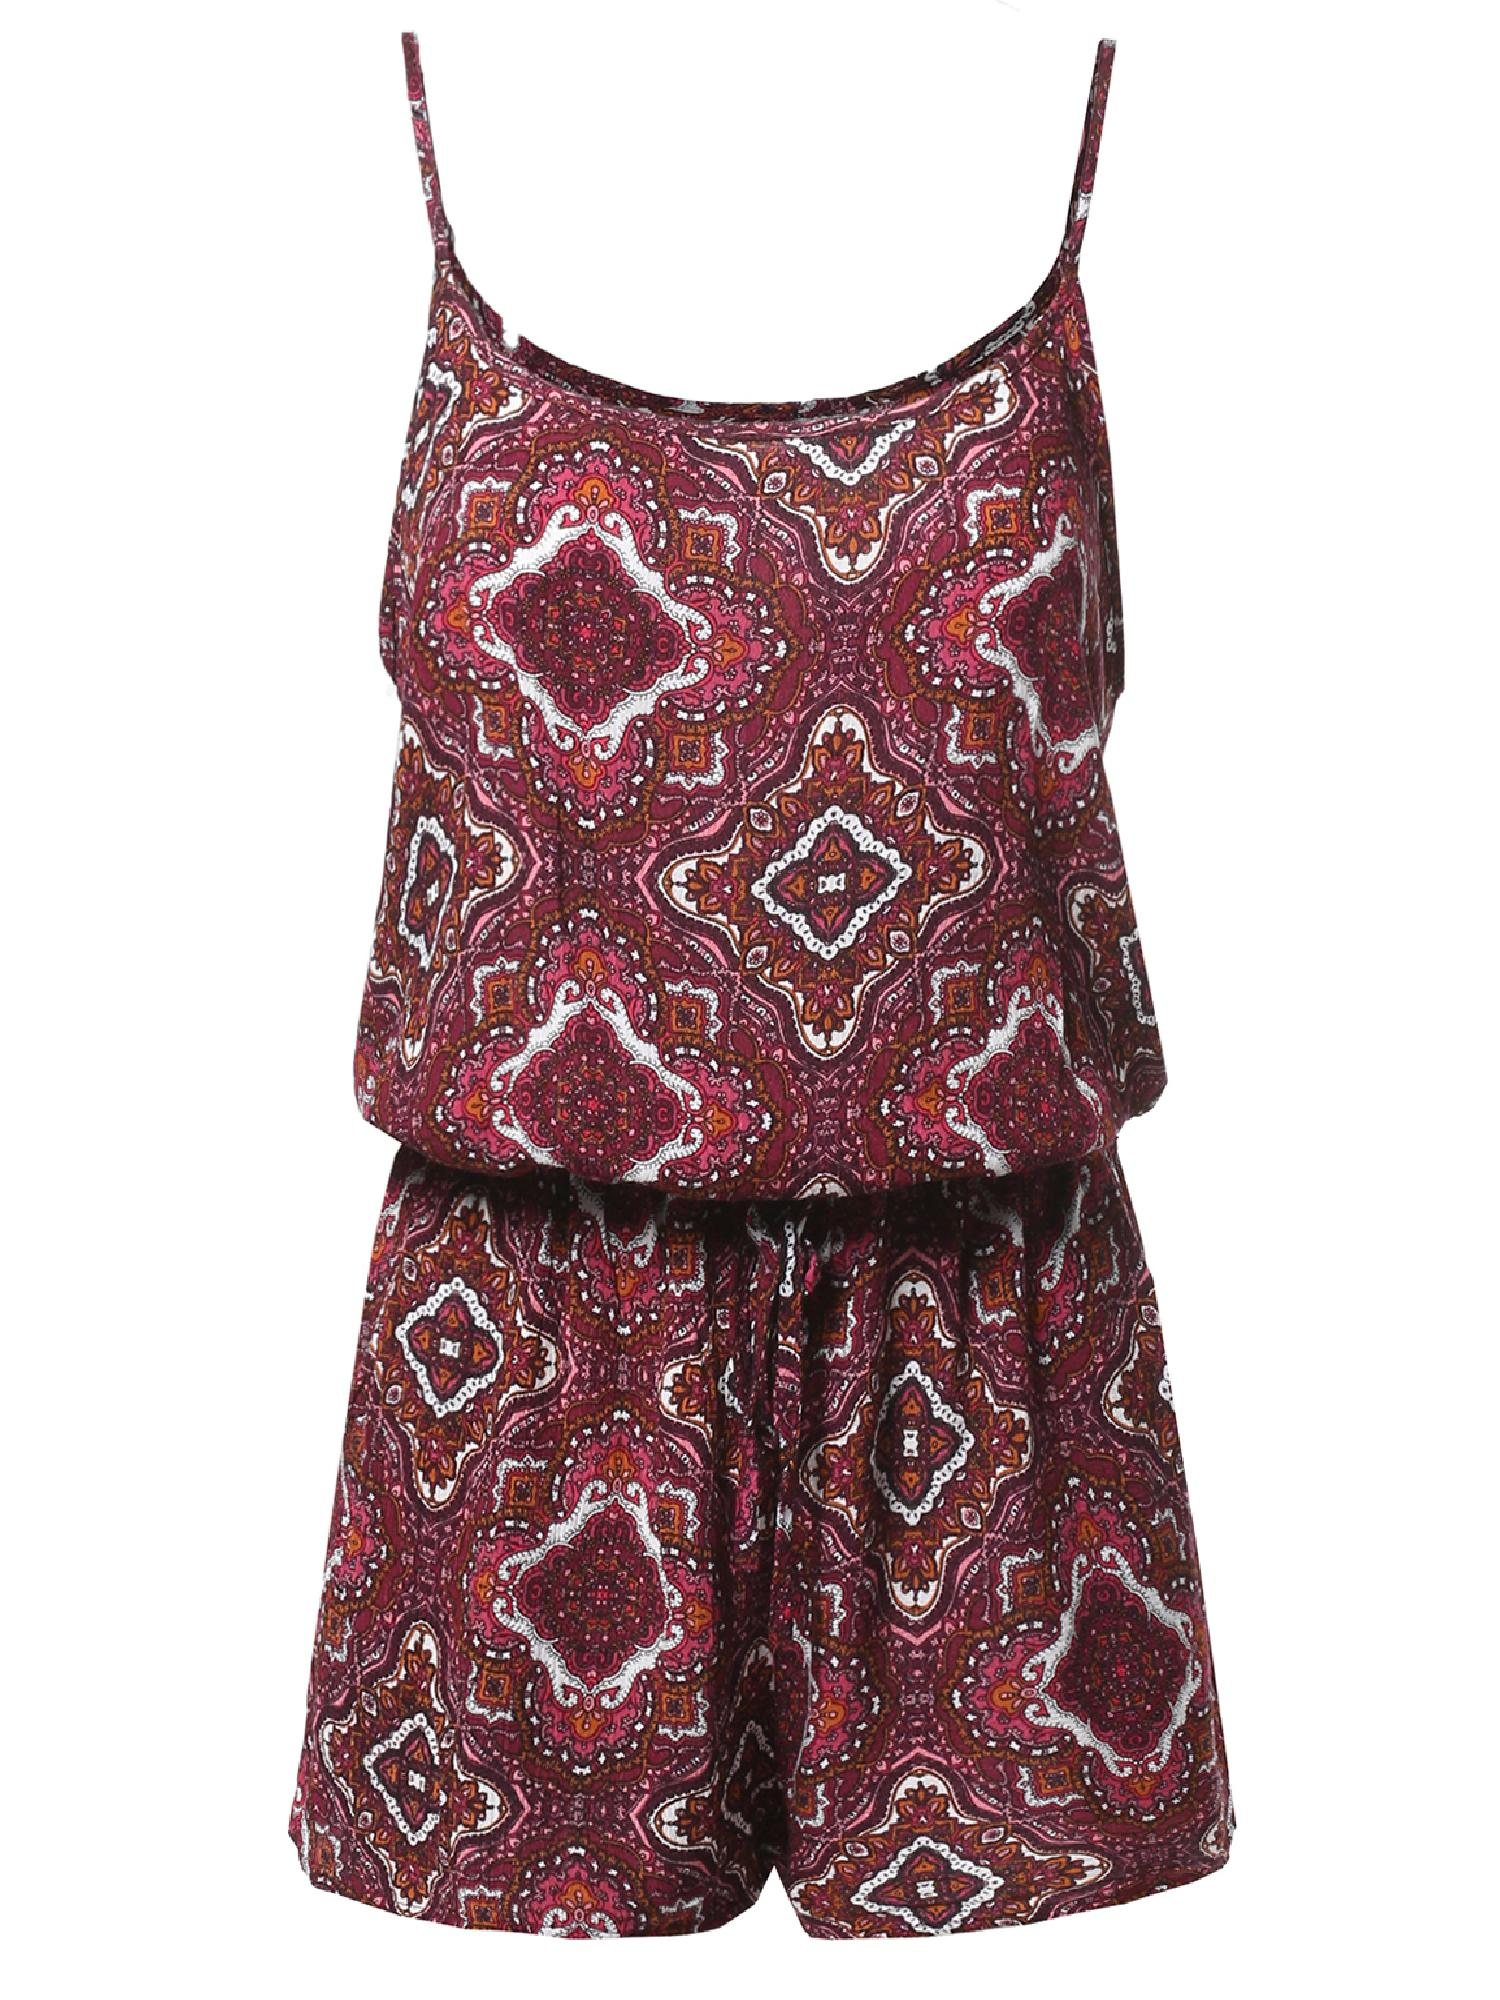 FashionOutfit Women's Summer Spaghetti Strap Floral Print Overlay Romper Jumpsuit